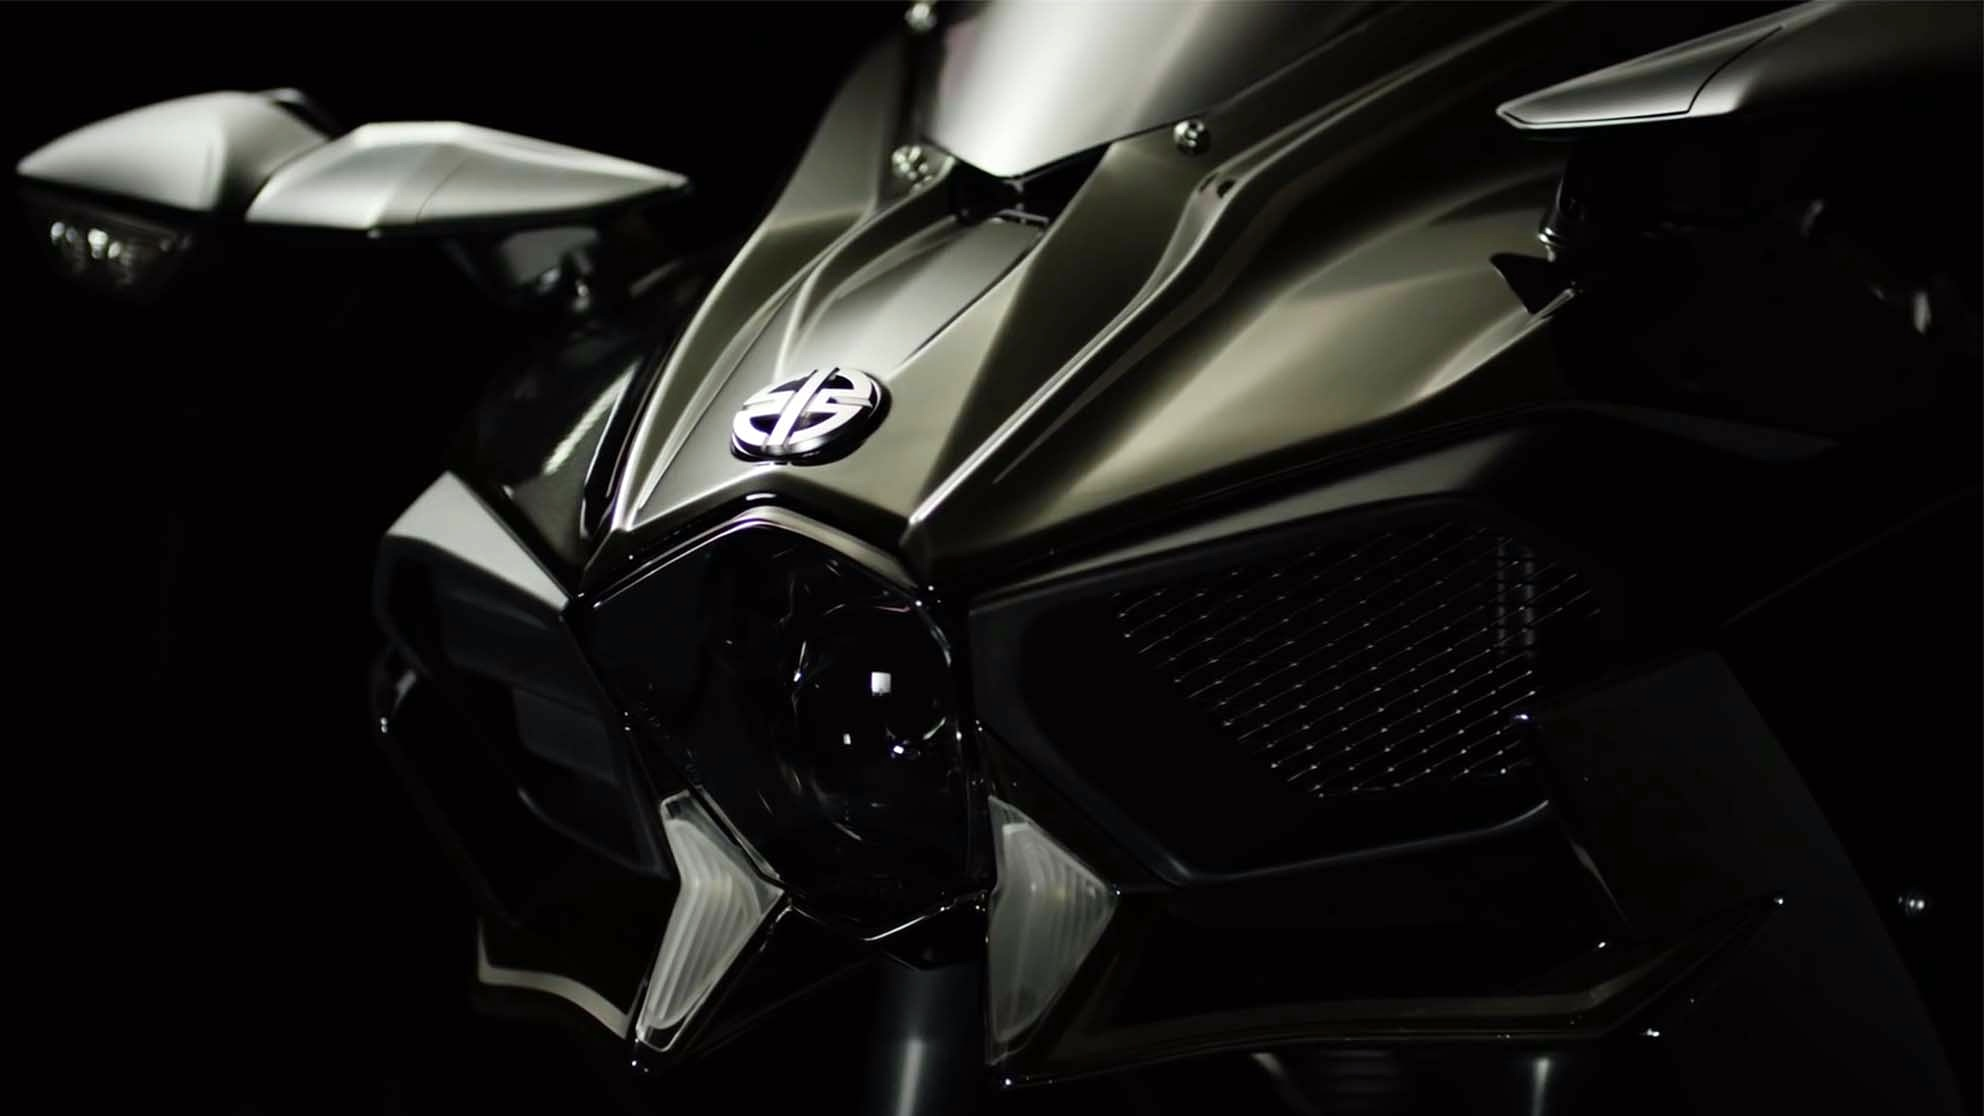 2016 Kawasaki Ninja H2 black colour option